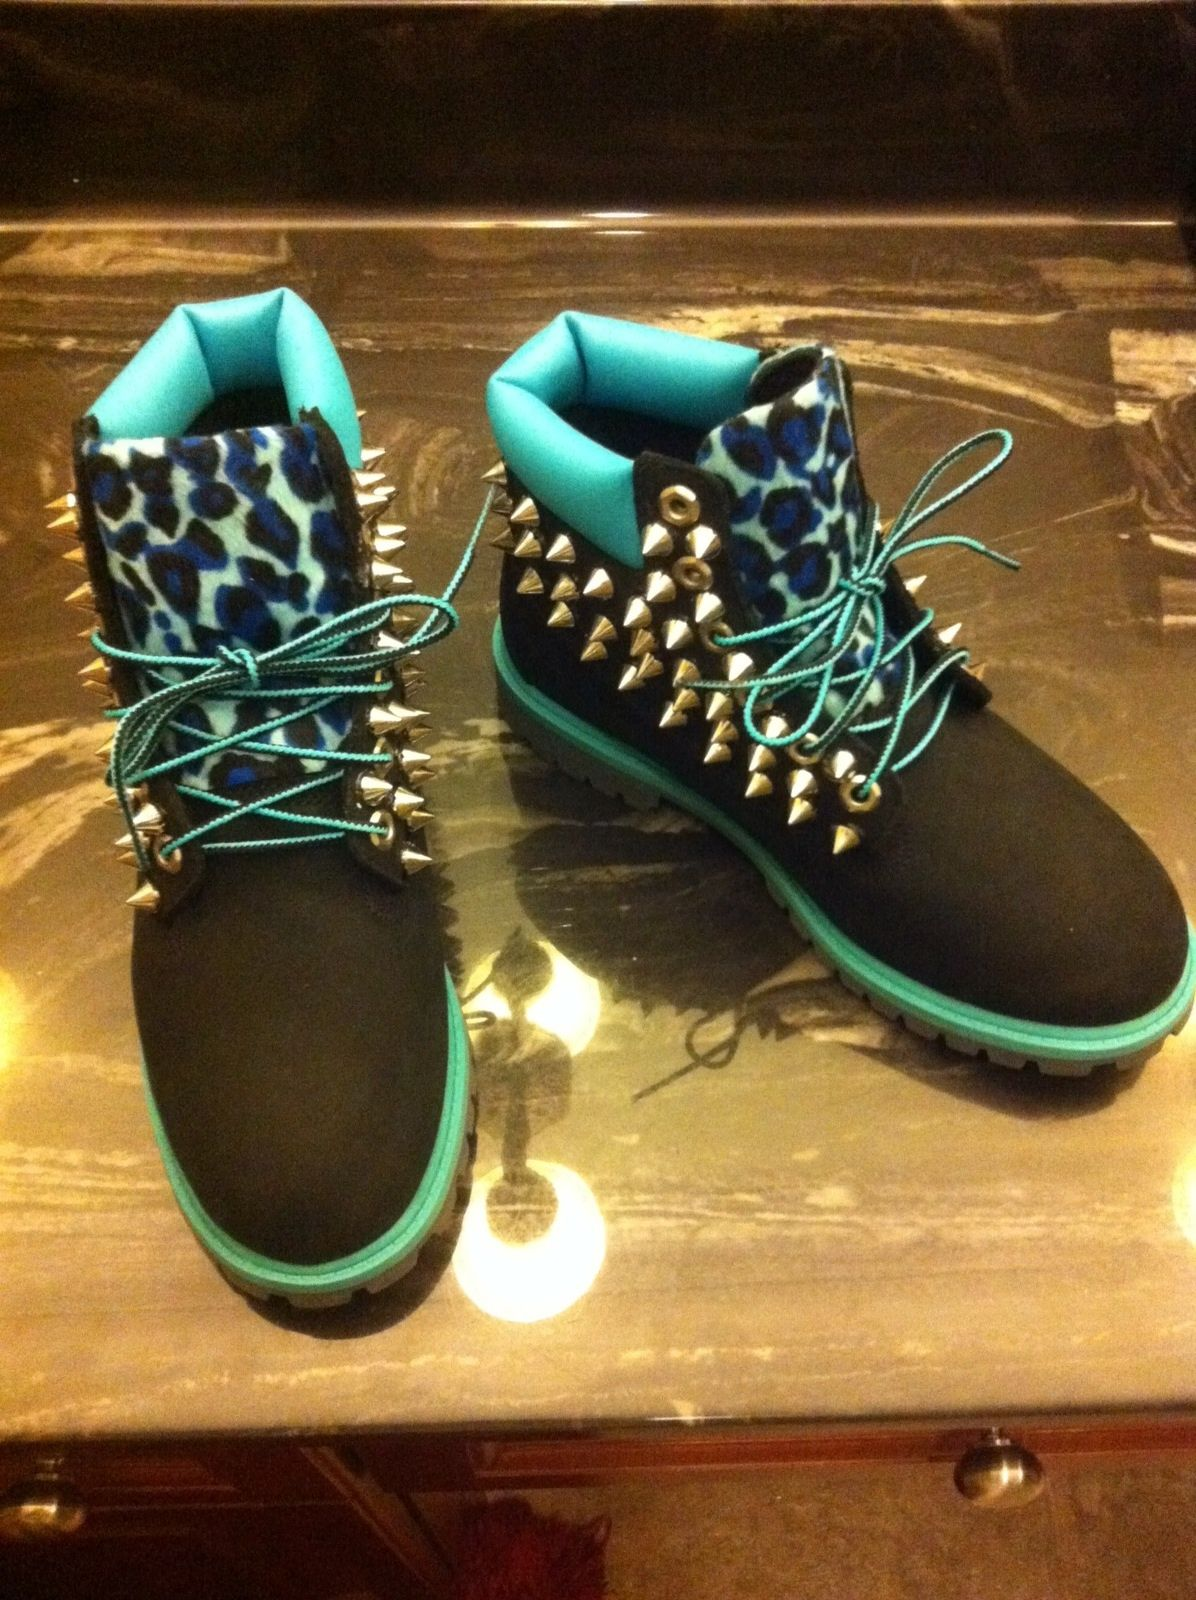 fbfa67b69241 TURQUOISE BLACK LEOPARD SPIKED TIMBERLAND (JUNIOR SIZES 3.5-7) from  Bscllybangin12 on Storenvy